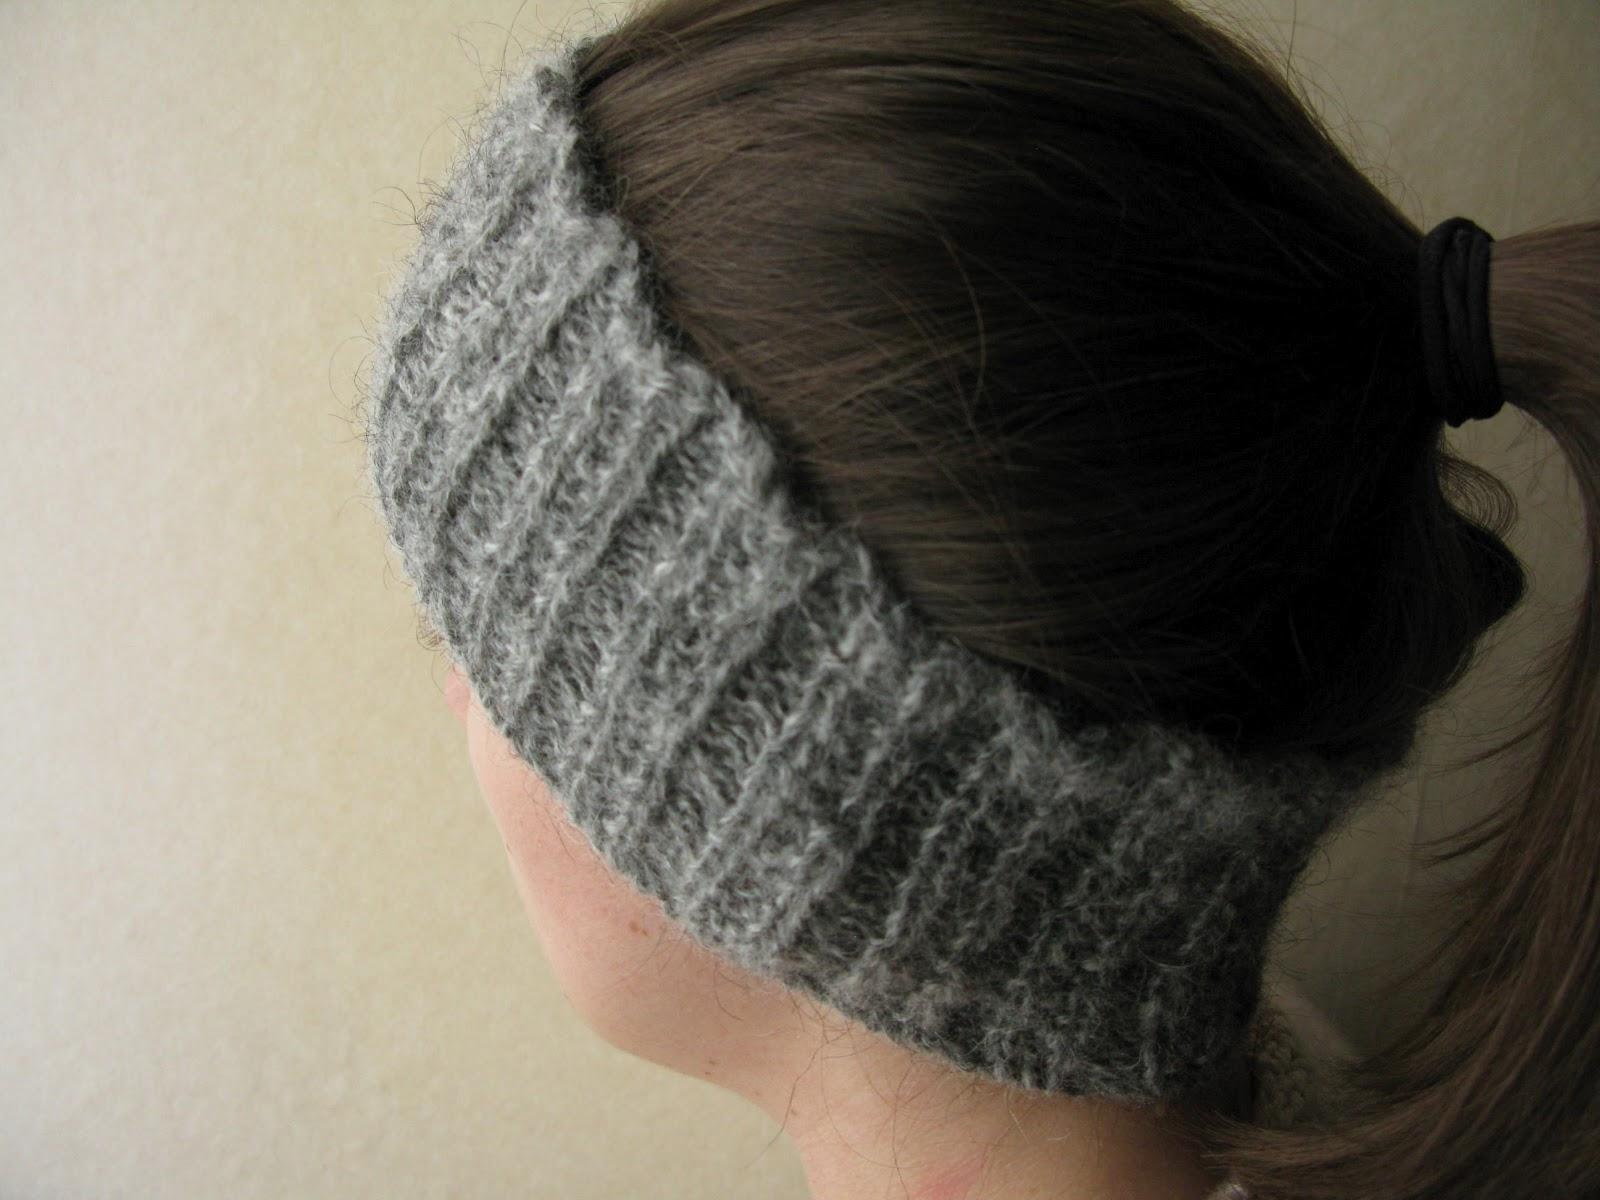 Knitted Headband Pattern On Circular Needles : littletheorem: Beaded Rib Headband